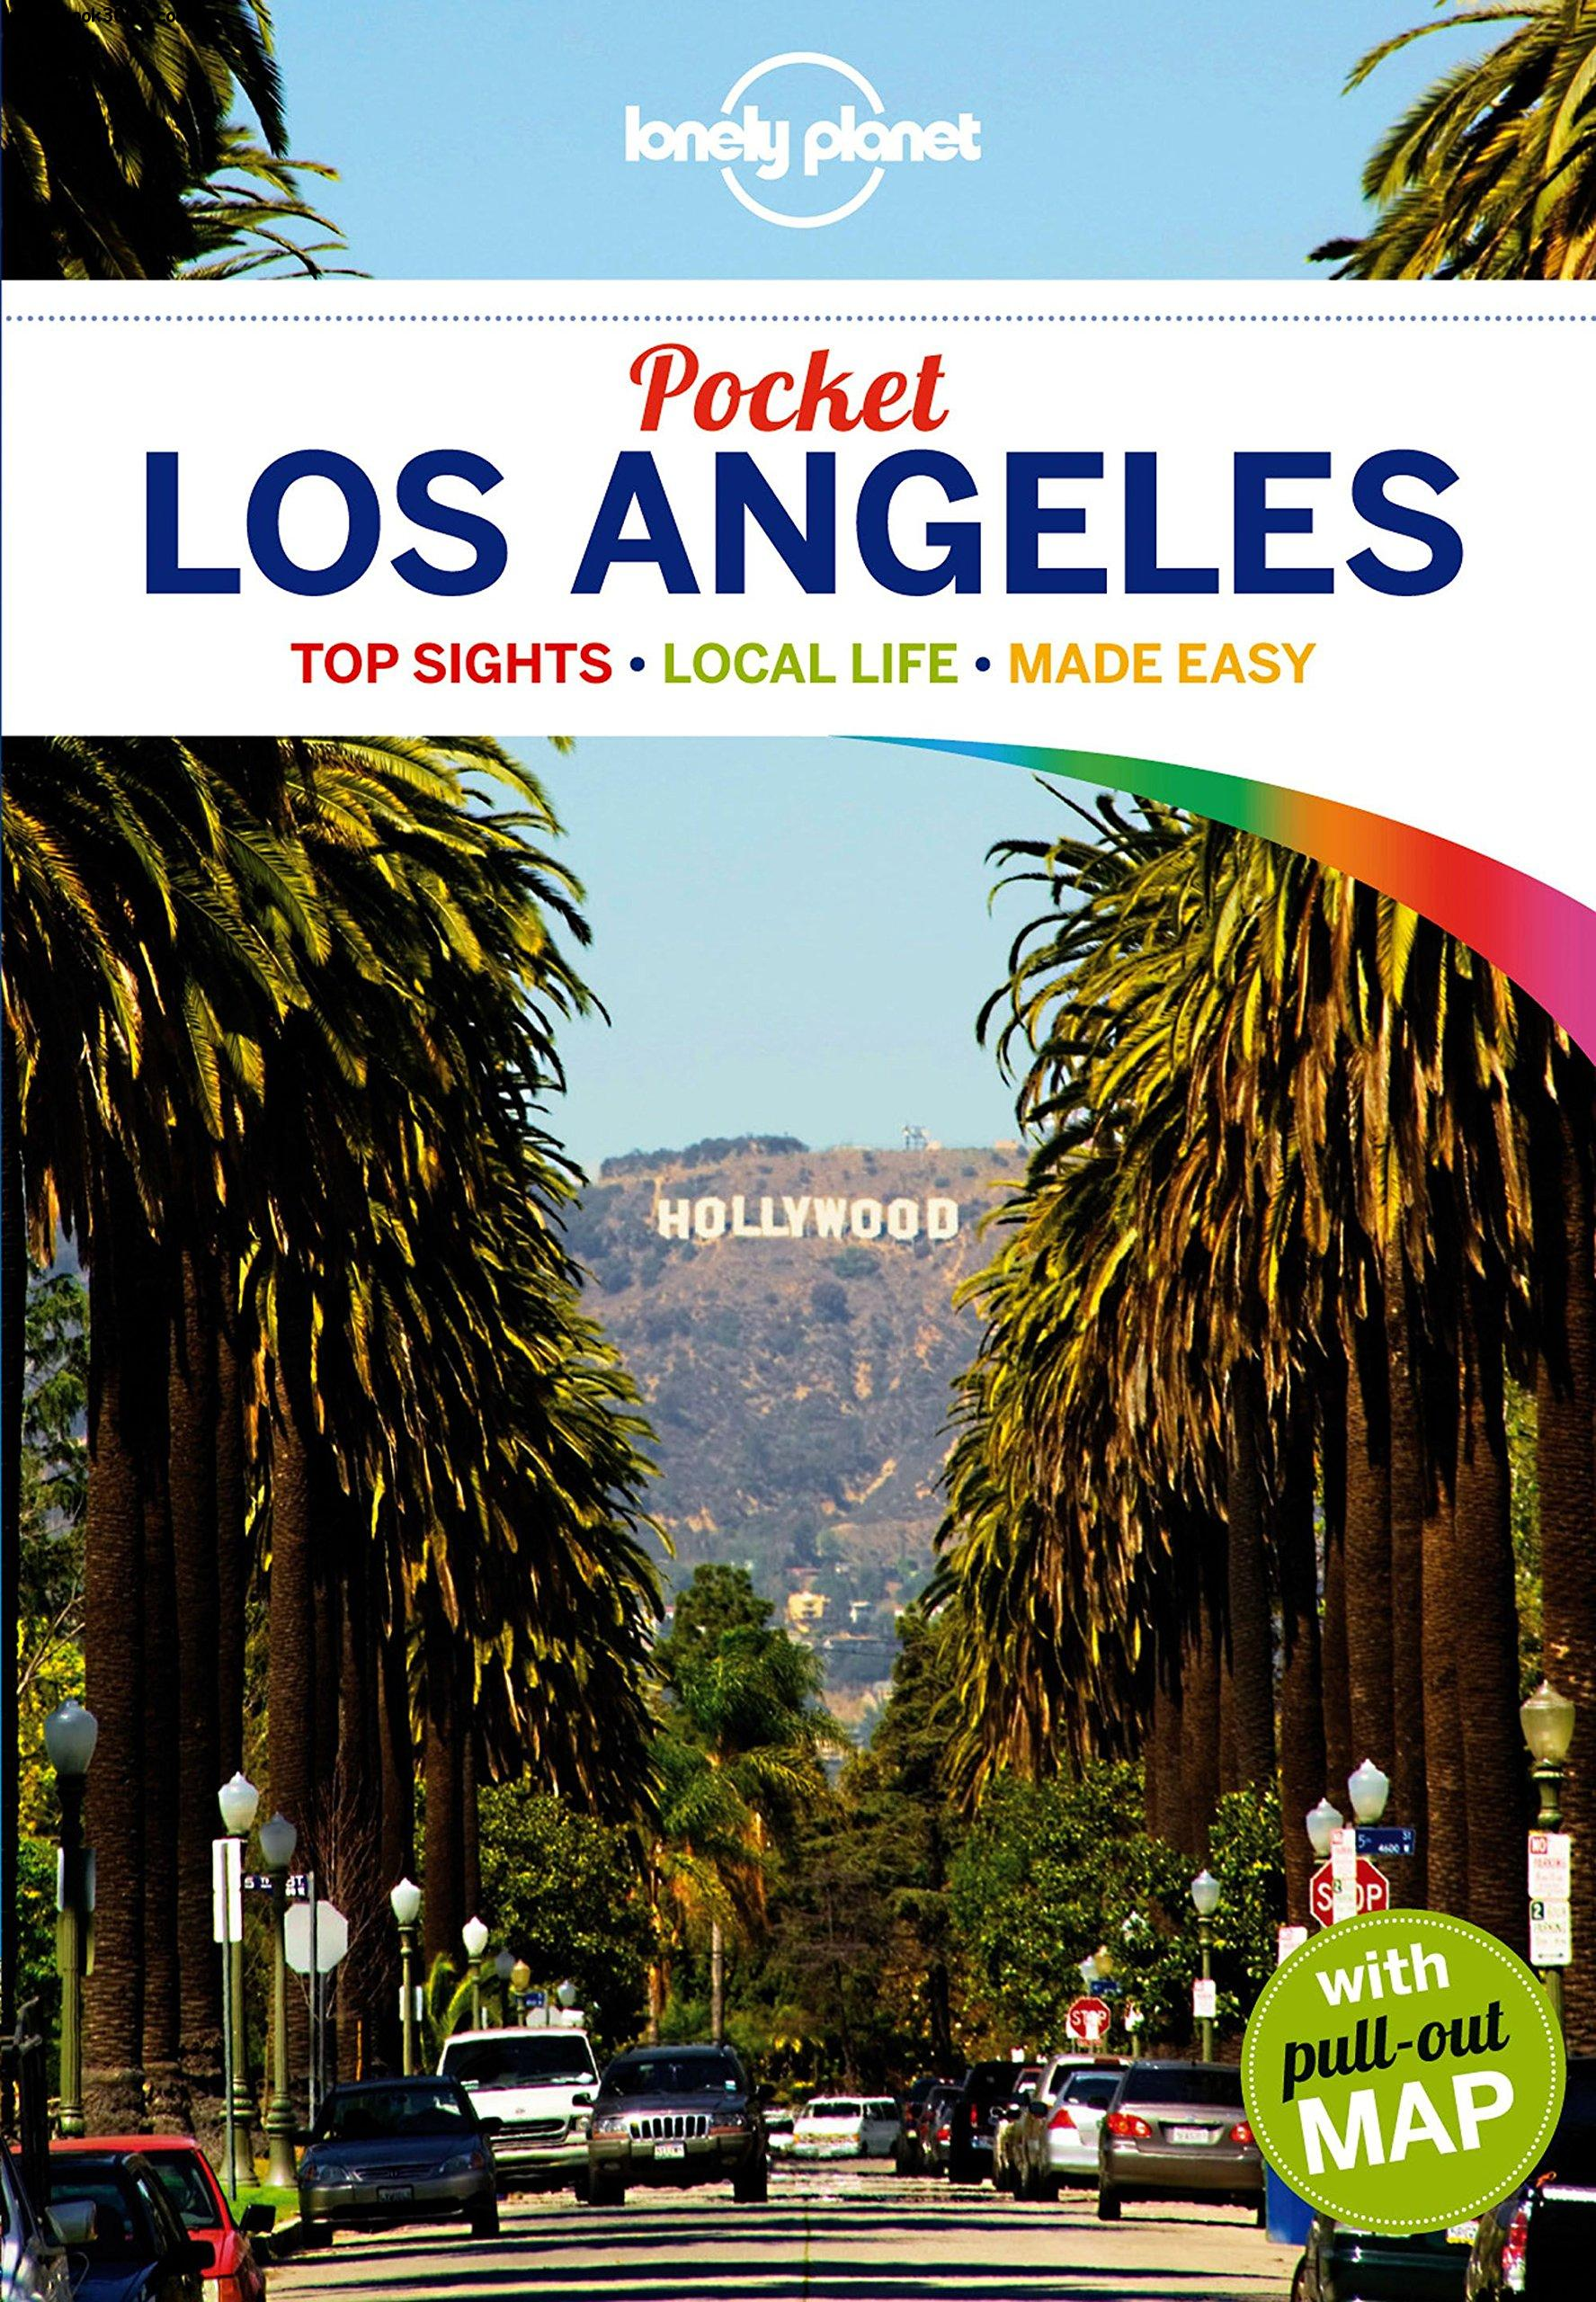 Lonely planet pocket los angeles travel guide free for Los angeles vacation guide